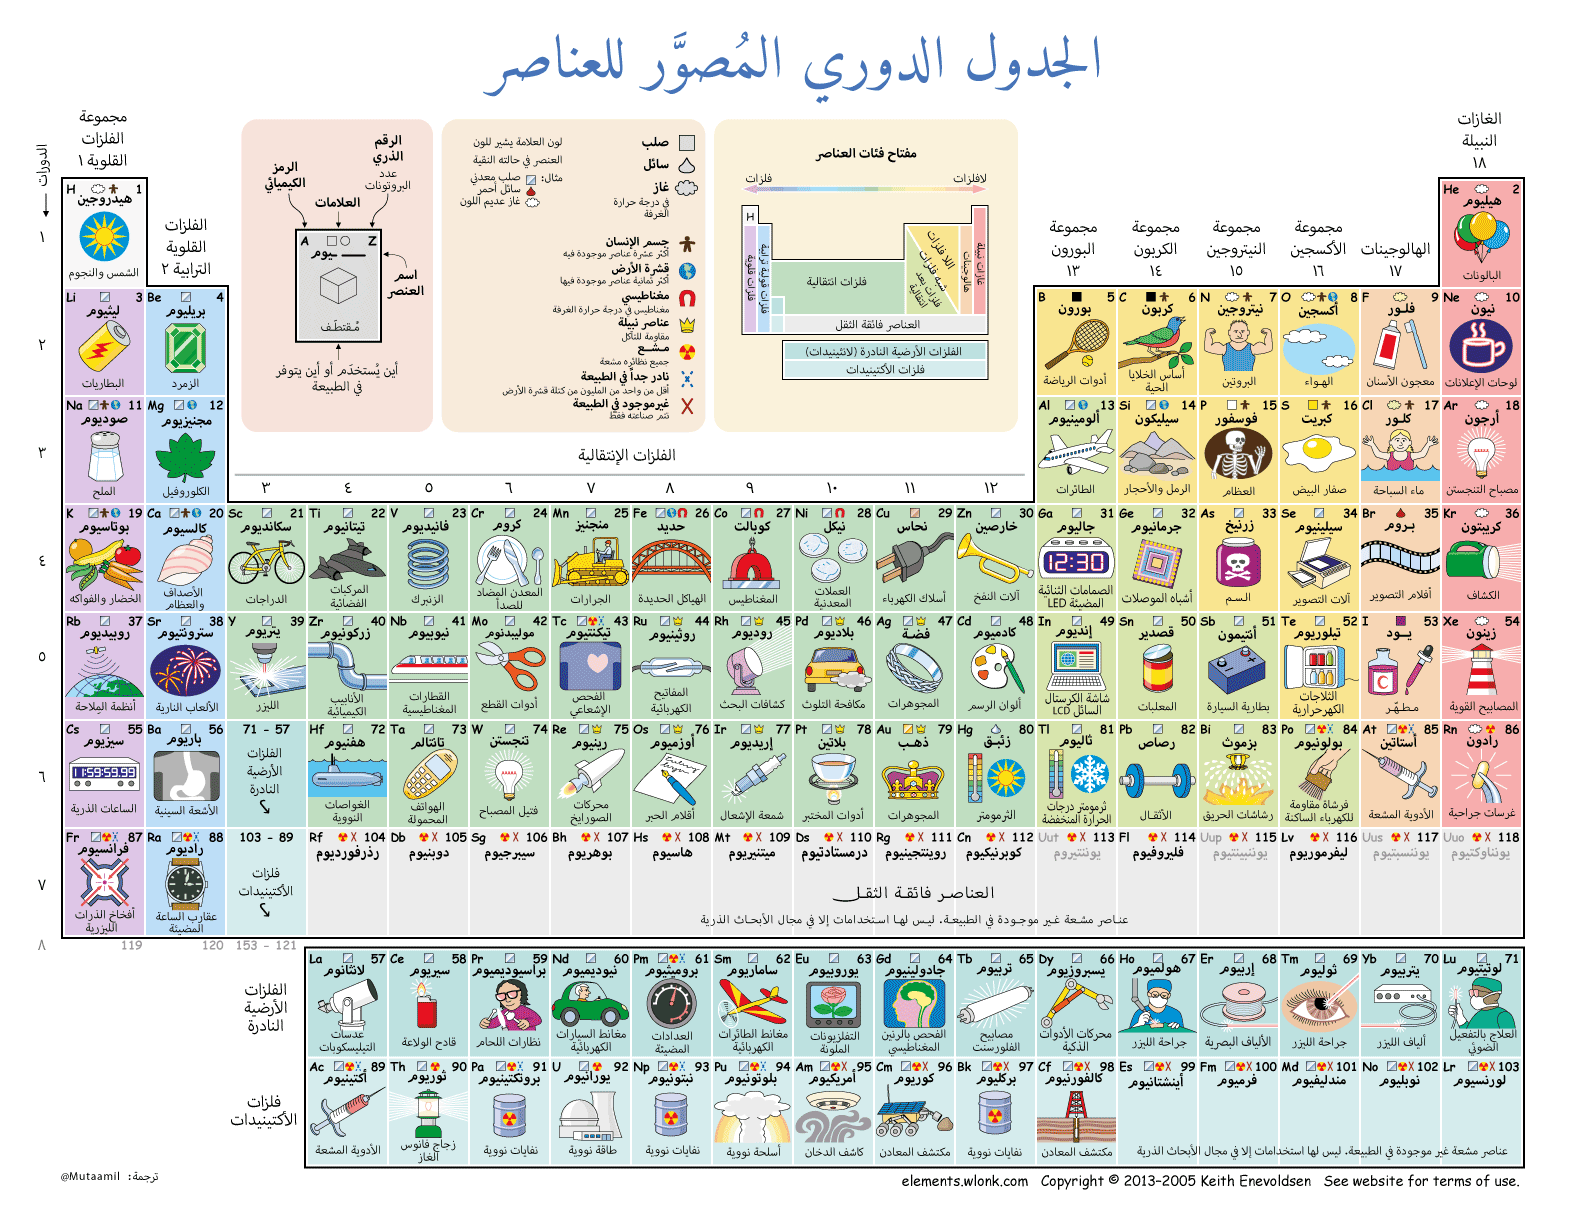 Pin by AM1NH on Chemistry | Periodic table of the elements ...